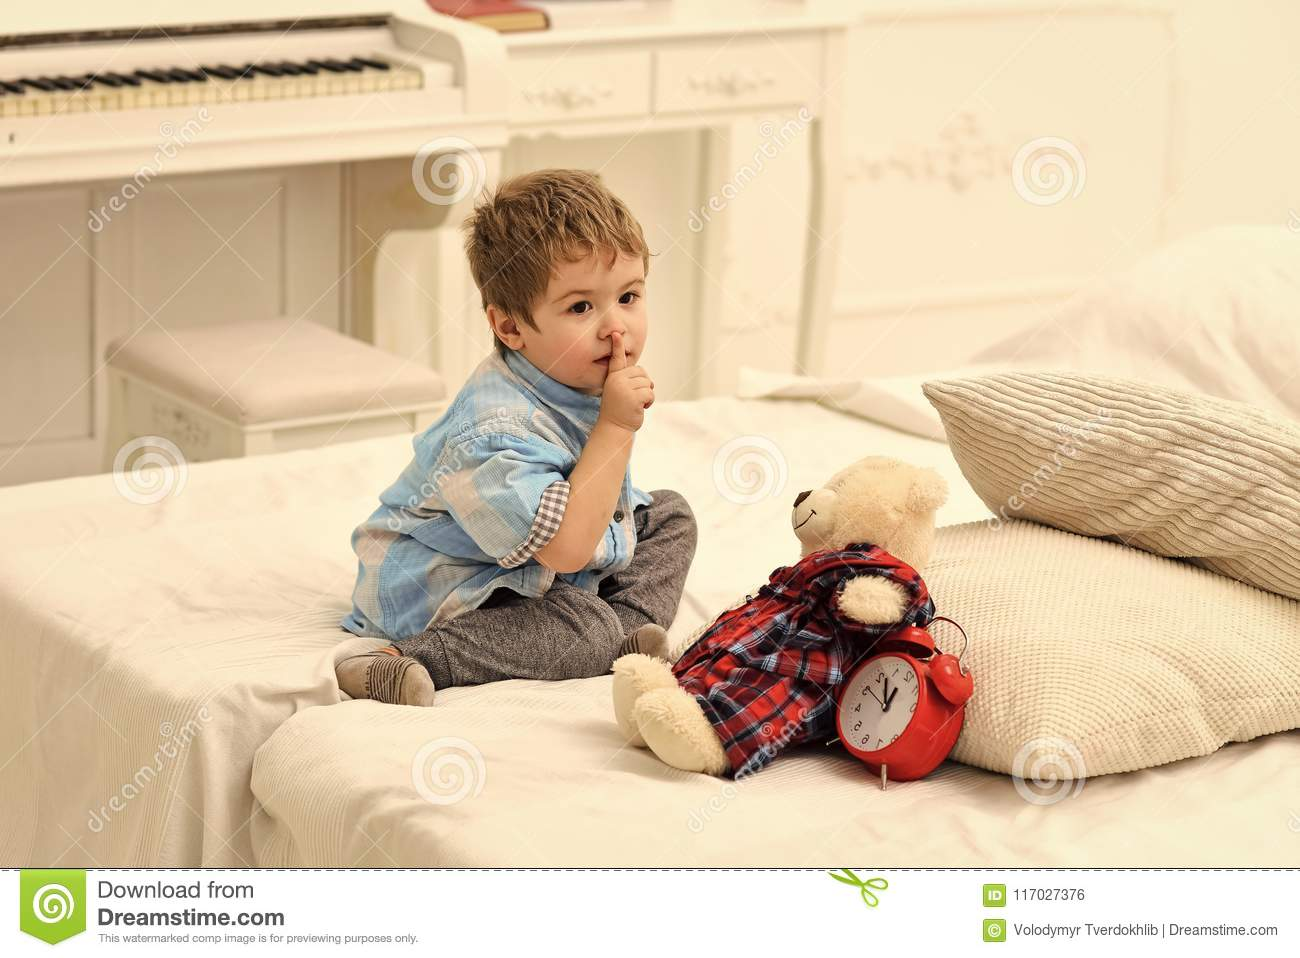 Kids playing with toys. Child in bedroom with silence gesture. Kid put plush bear near pillows and alarm clock, luxury